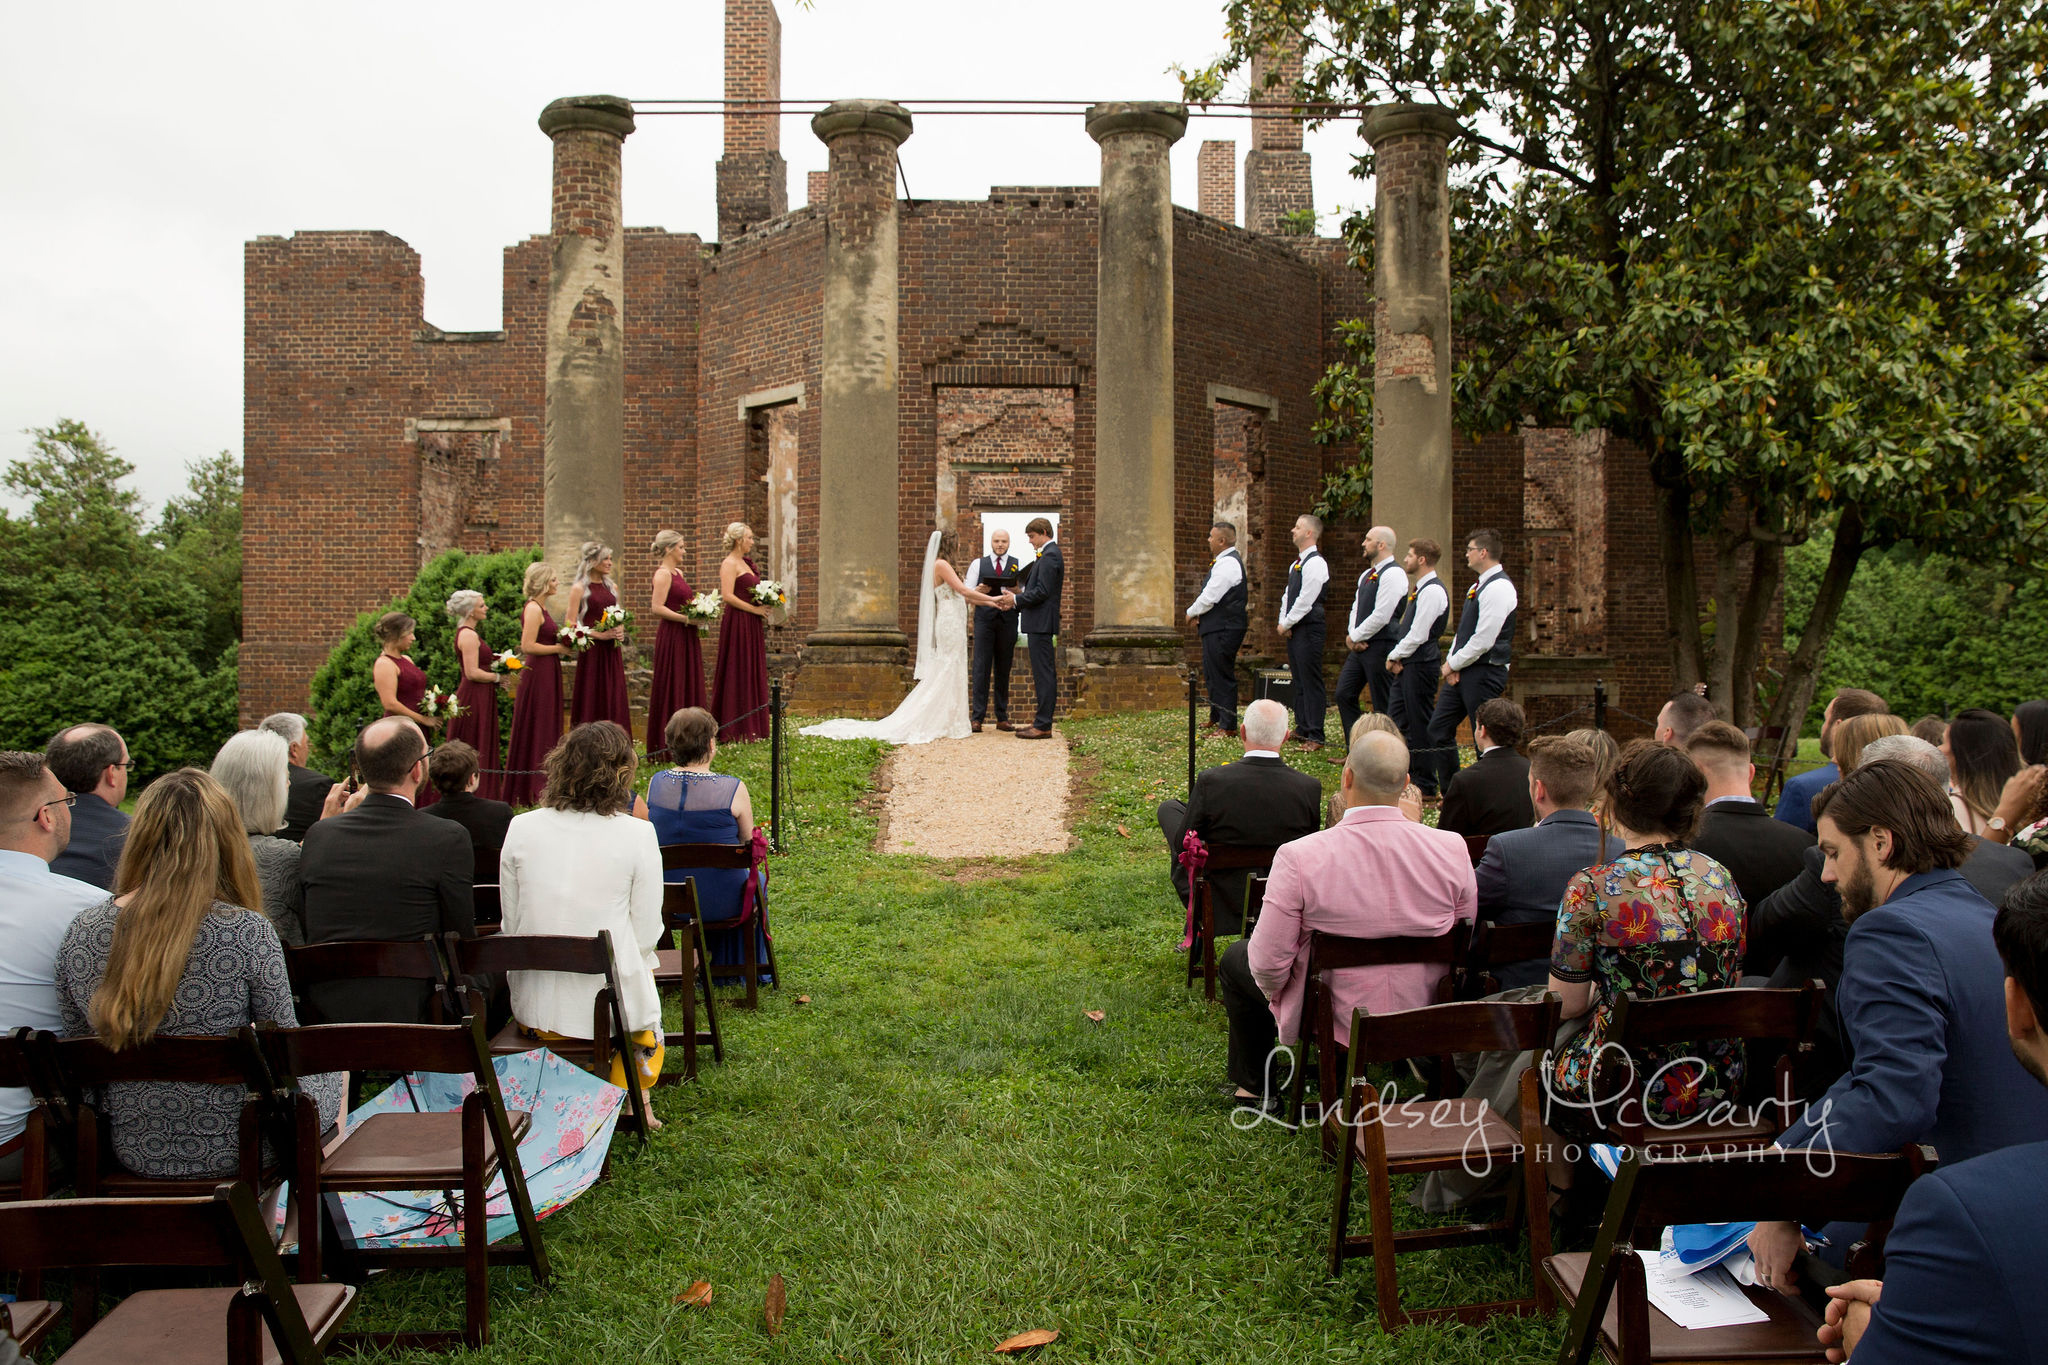 Lindsey McCarty Photography | Barboursville Wedding | Barboursville Vineyards | Barboursville Ruins | Barboursville Ruins Wedding